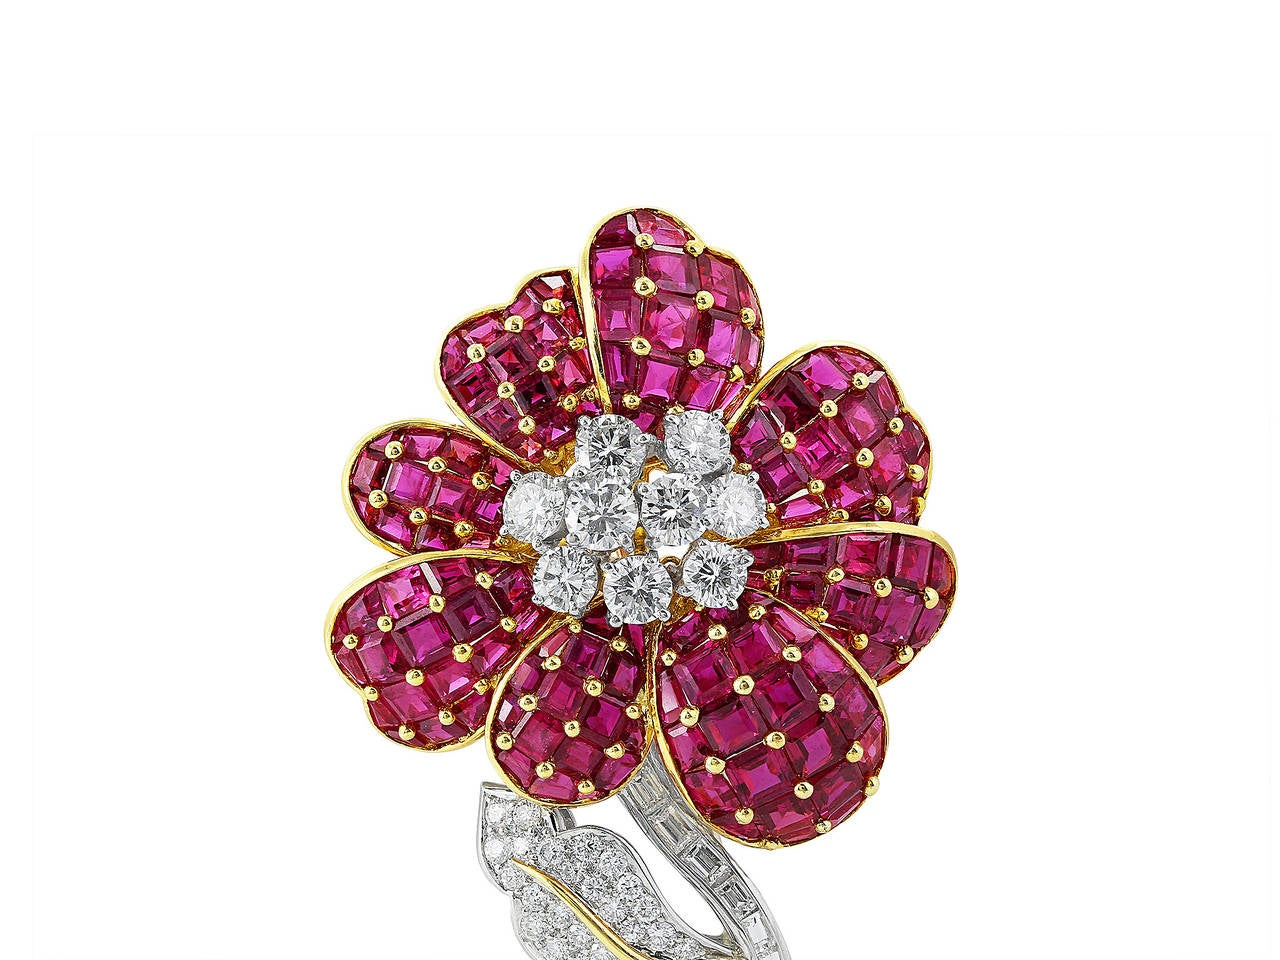 18 karat two tone pin consisting step-cut rubies, featuring 7 round brilliant diamonds in flower design with baguette and round diamonds accenting leaf and stem signed, Oscar Heyman.